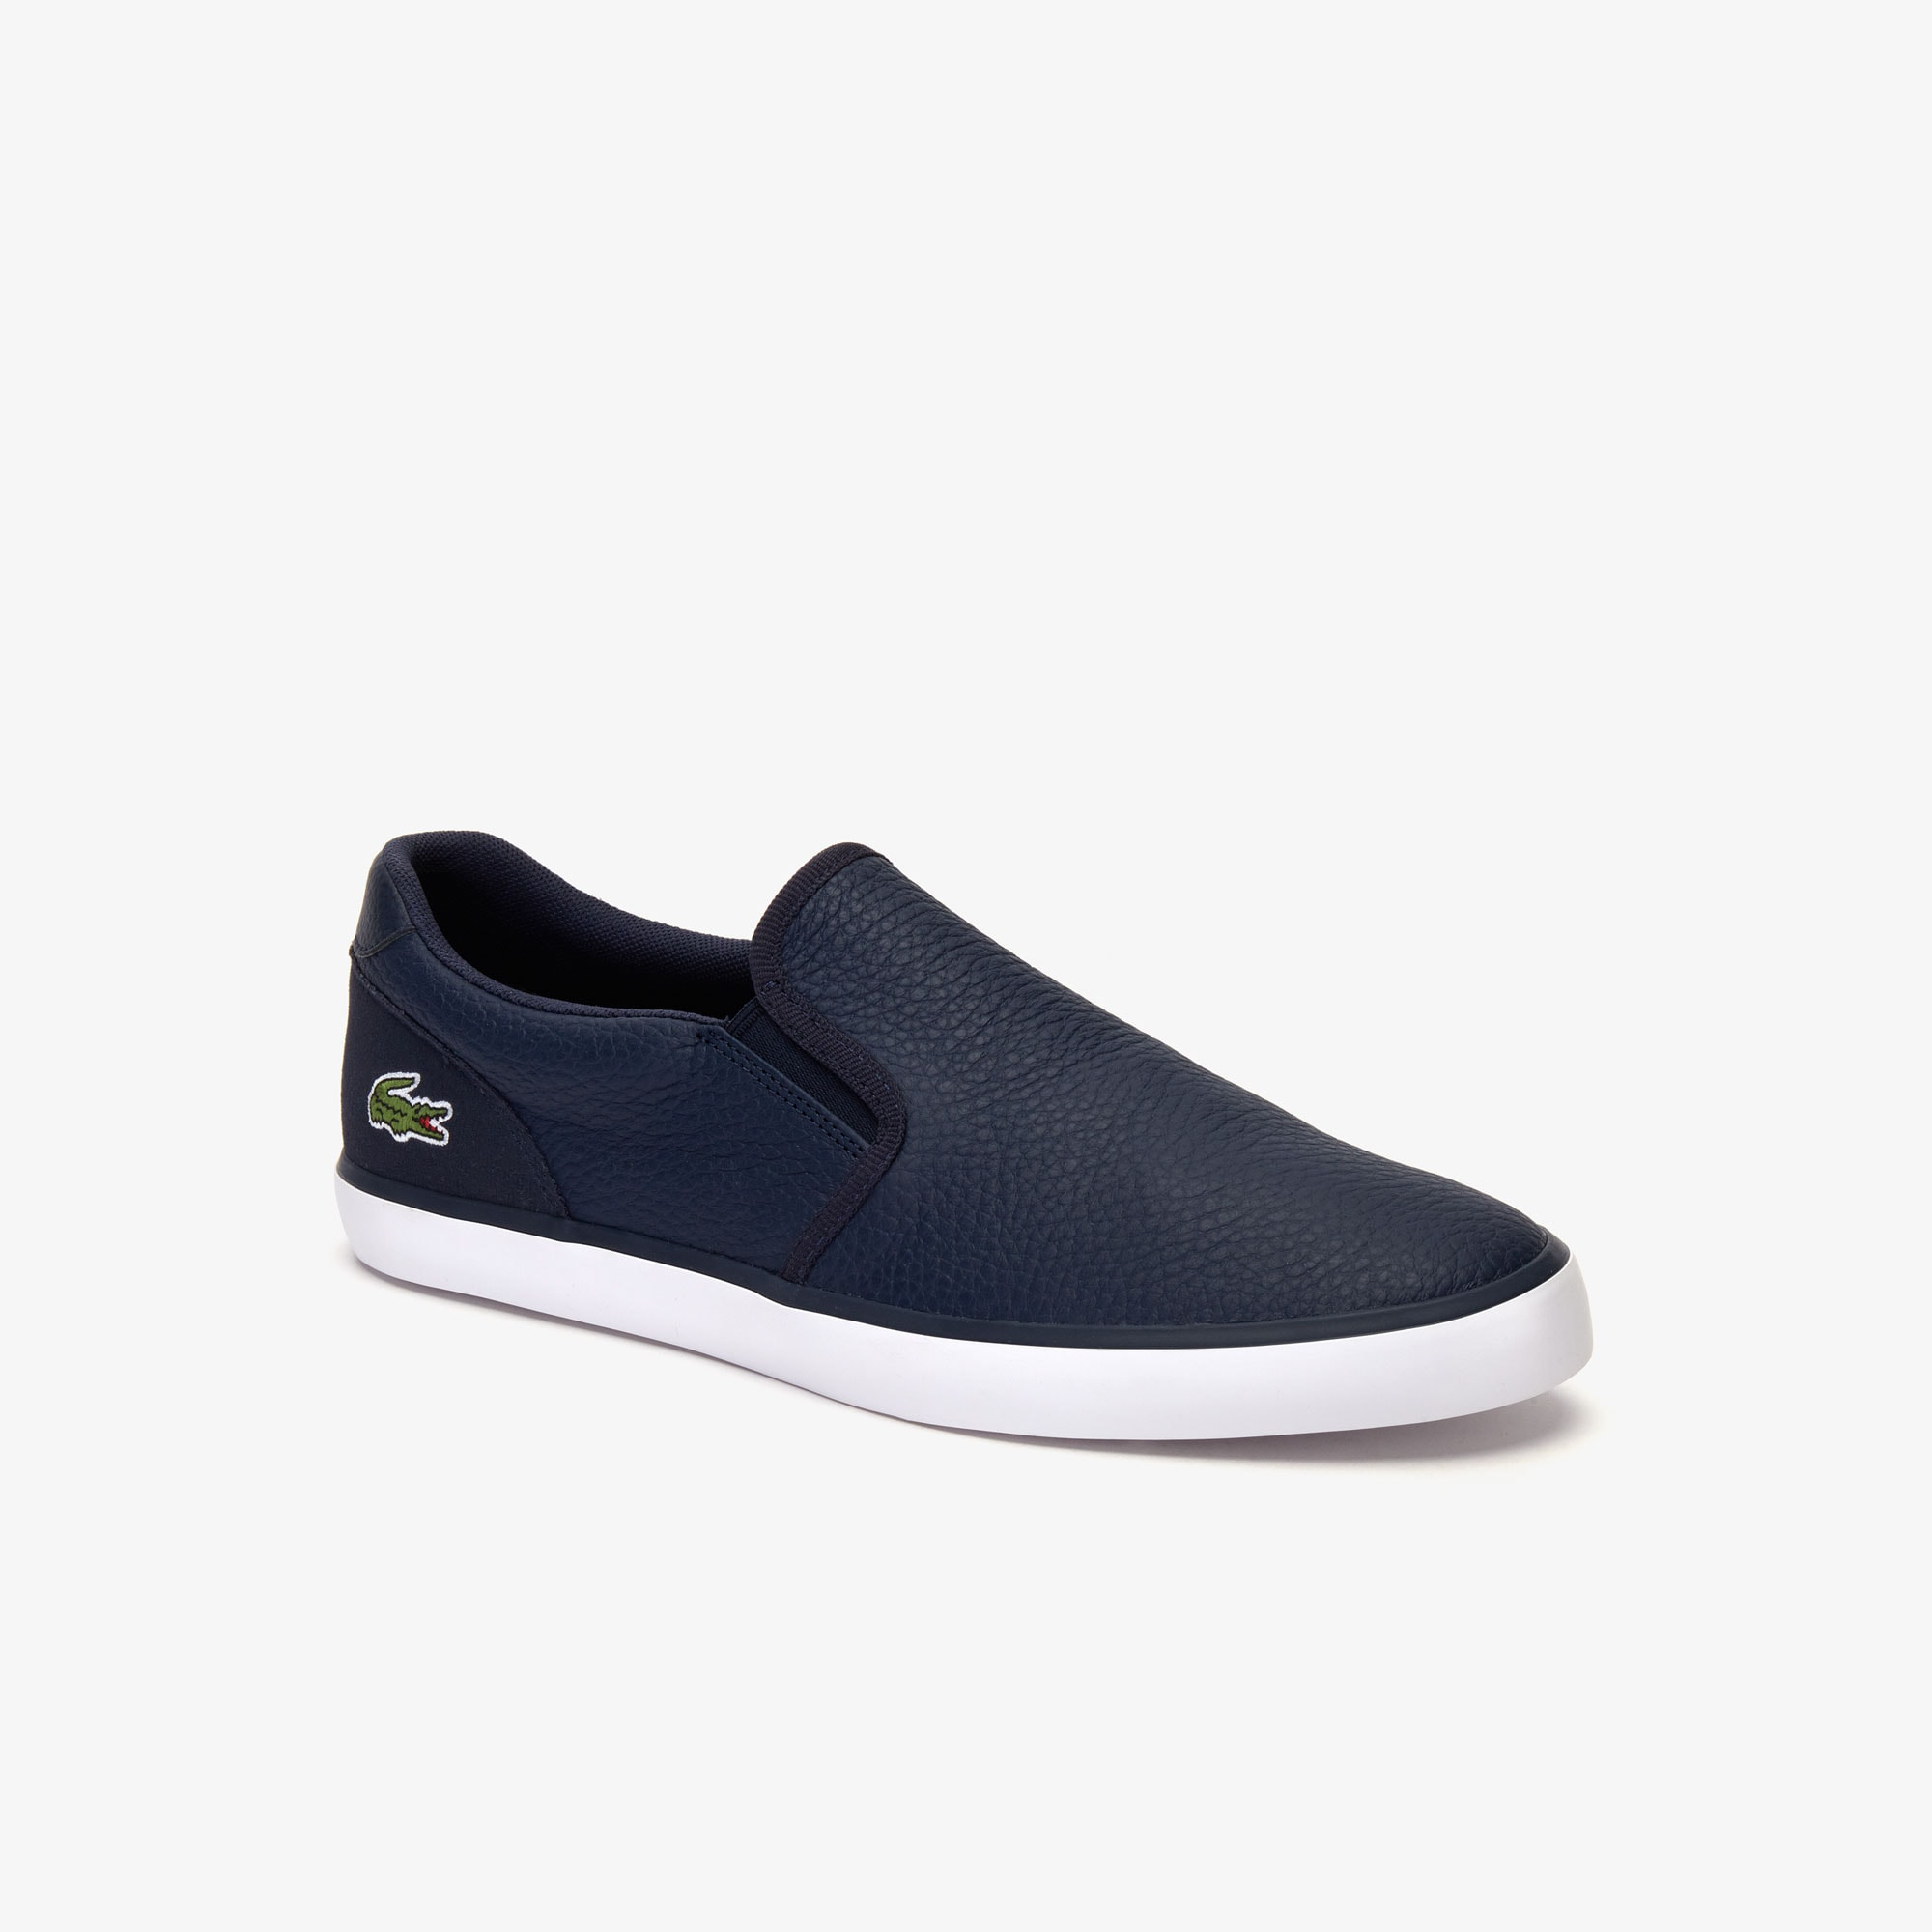 fe7fb9bb16 Men's Shoes | Shoes for Men | LACOSTE